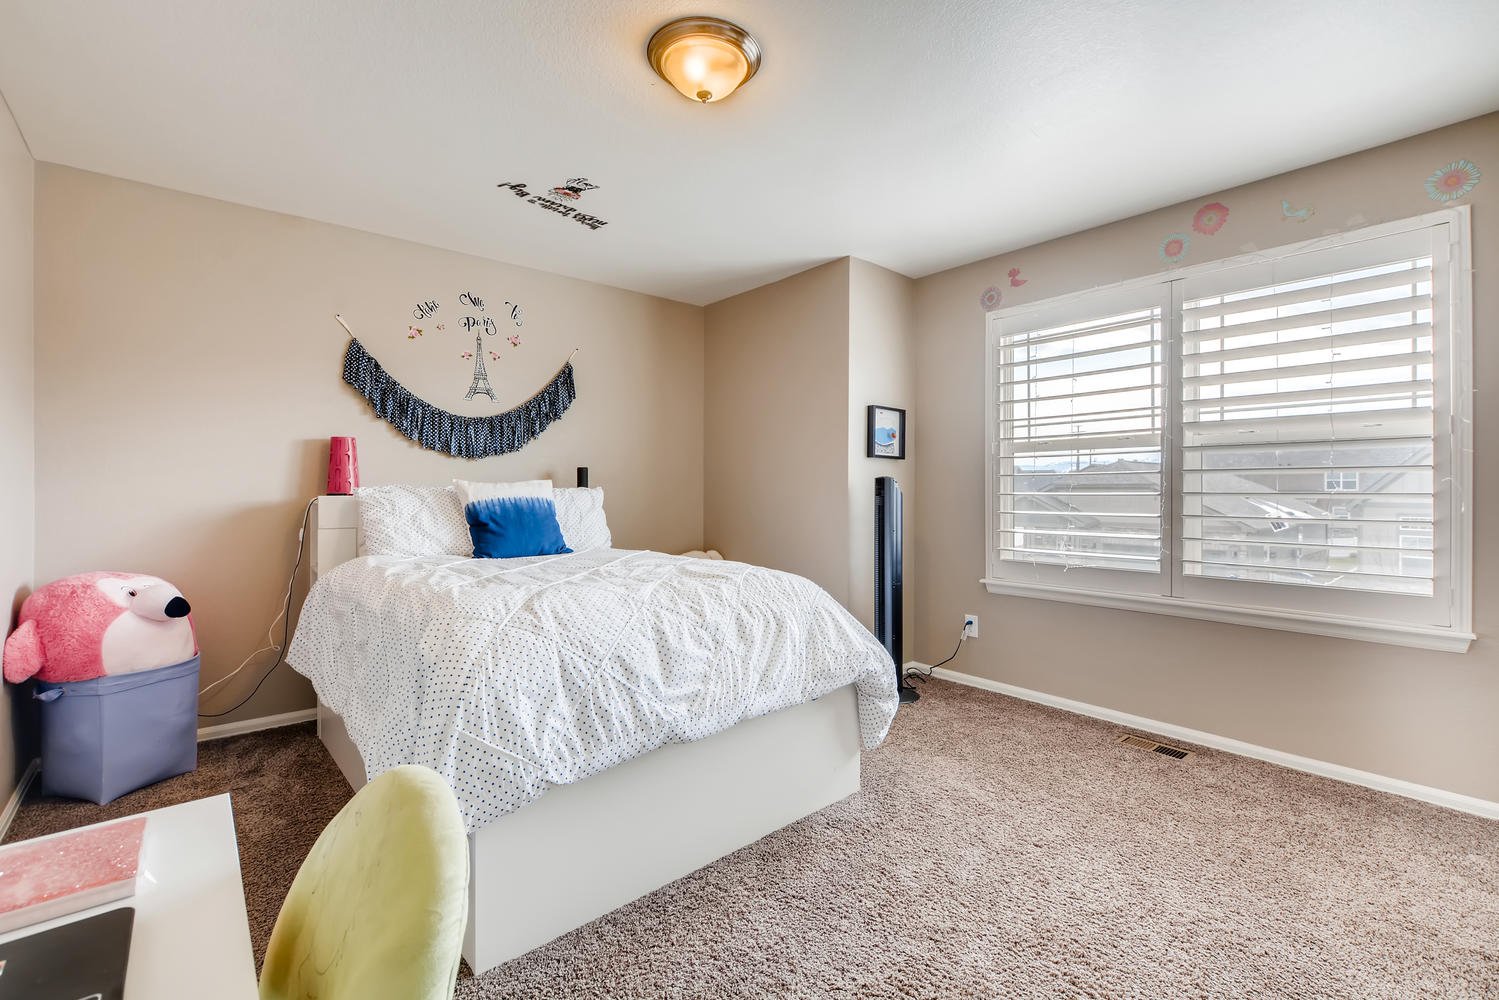 REAL ESTATE LISTING: 2182 Steppe Dr Longmont Bedroom #2